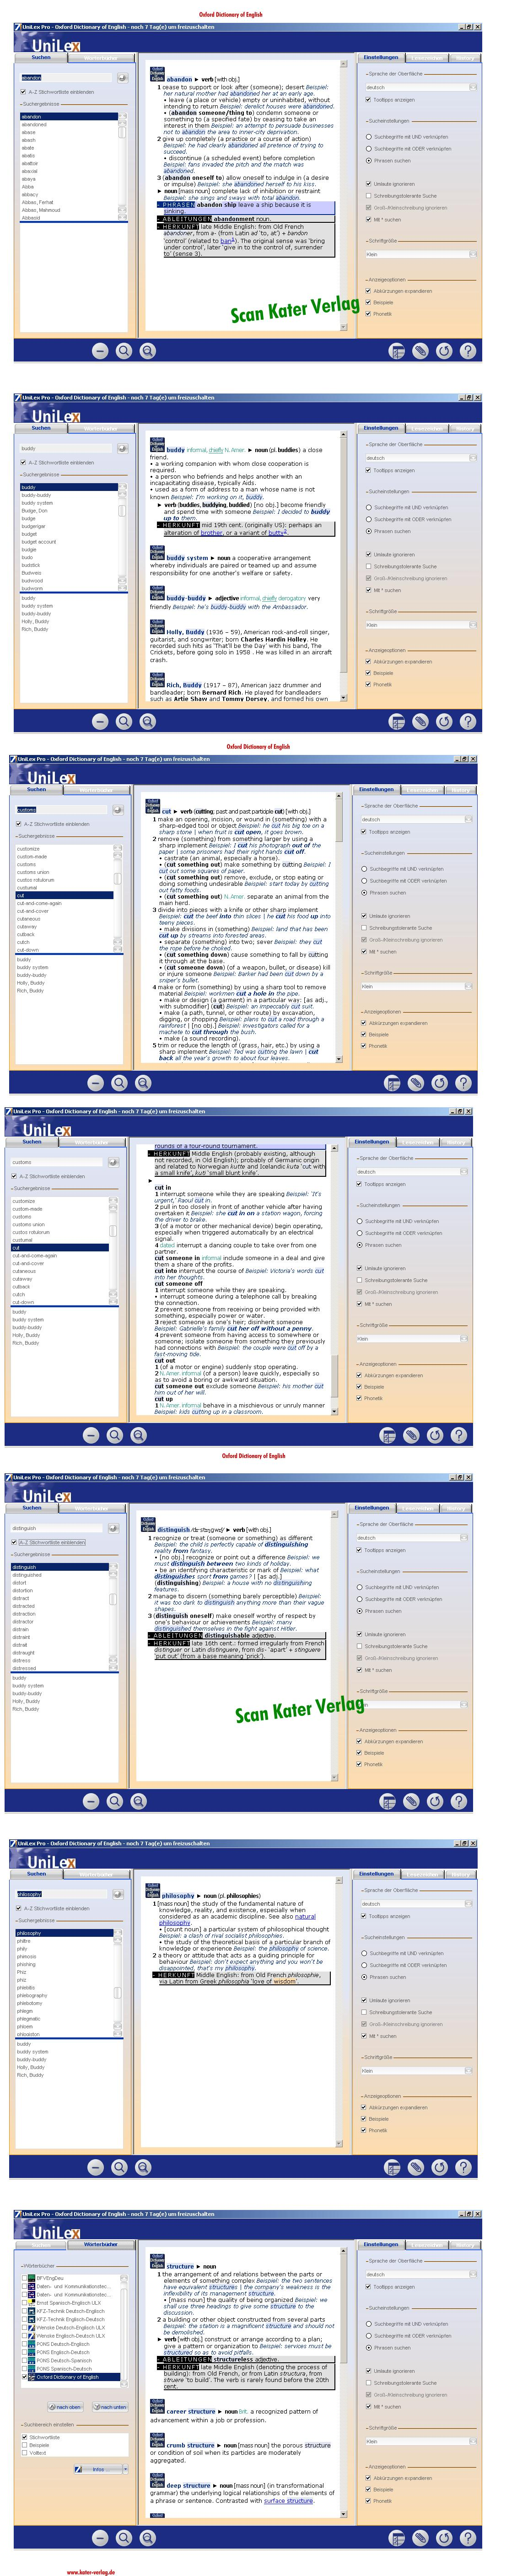 Oxford Dictionary of English EN-EN DOWNLOAD